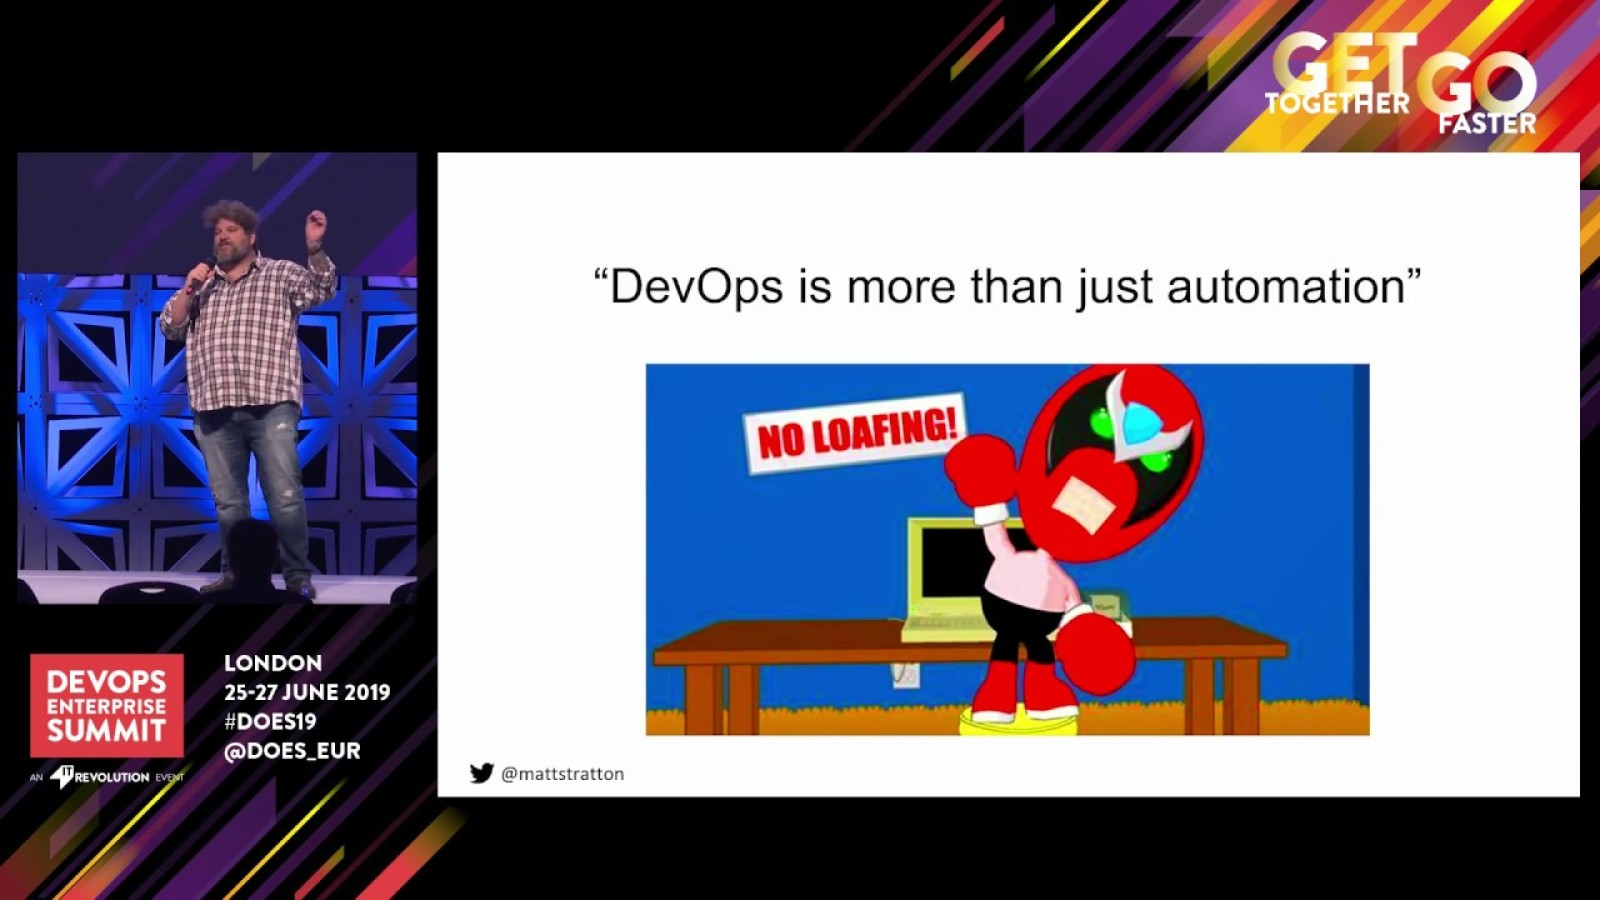 Hot Takes, Myths, And Falsehoods - Why Everyone Is Wrong About DevOps Except For Me